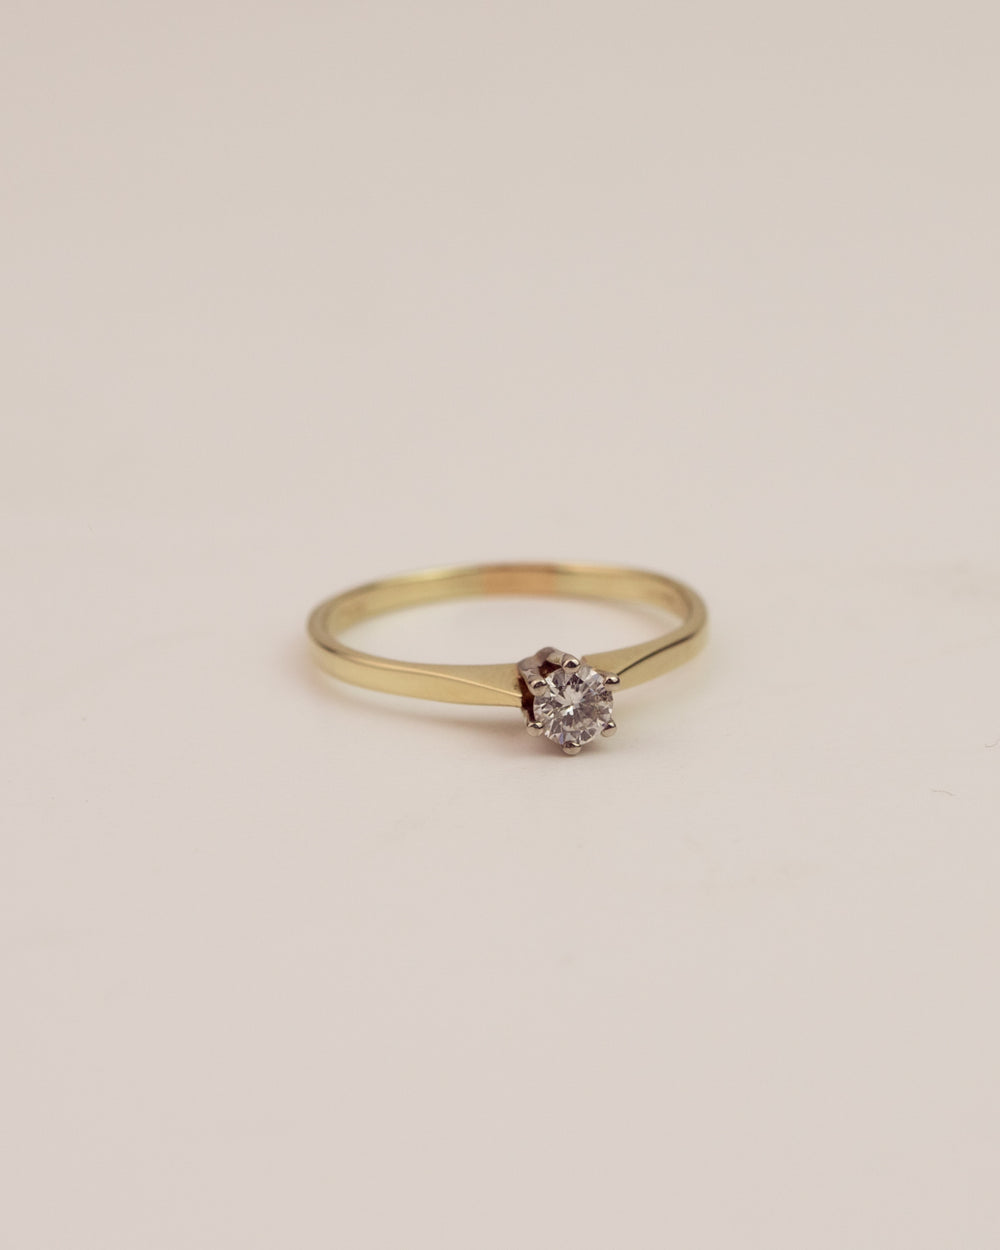 Constance Exclusive Vintage 9ct Gold Diamond Solitaire Ring